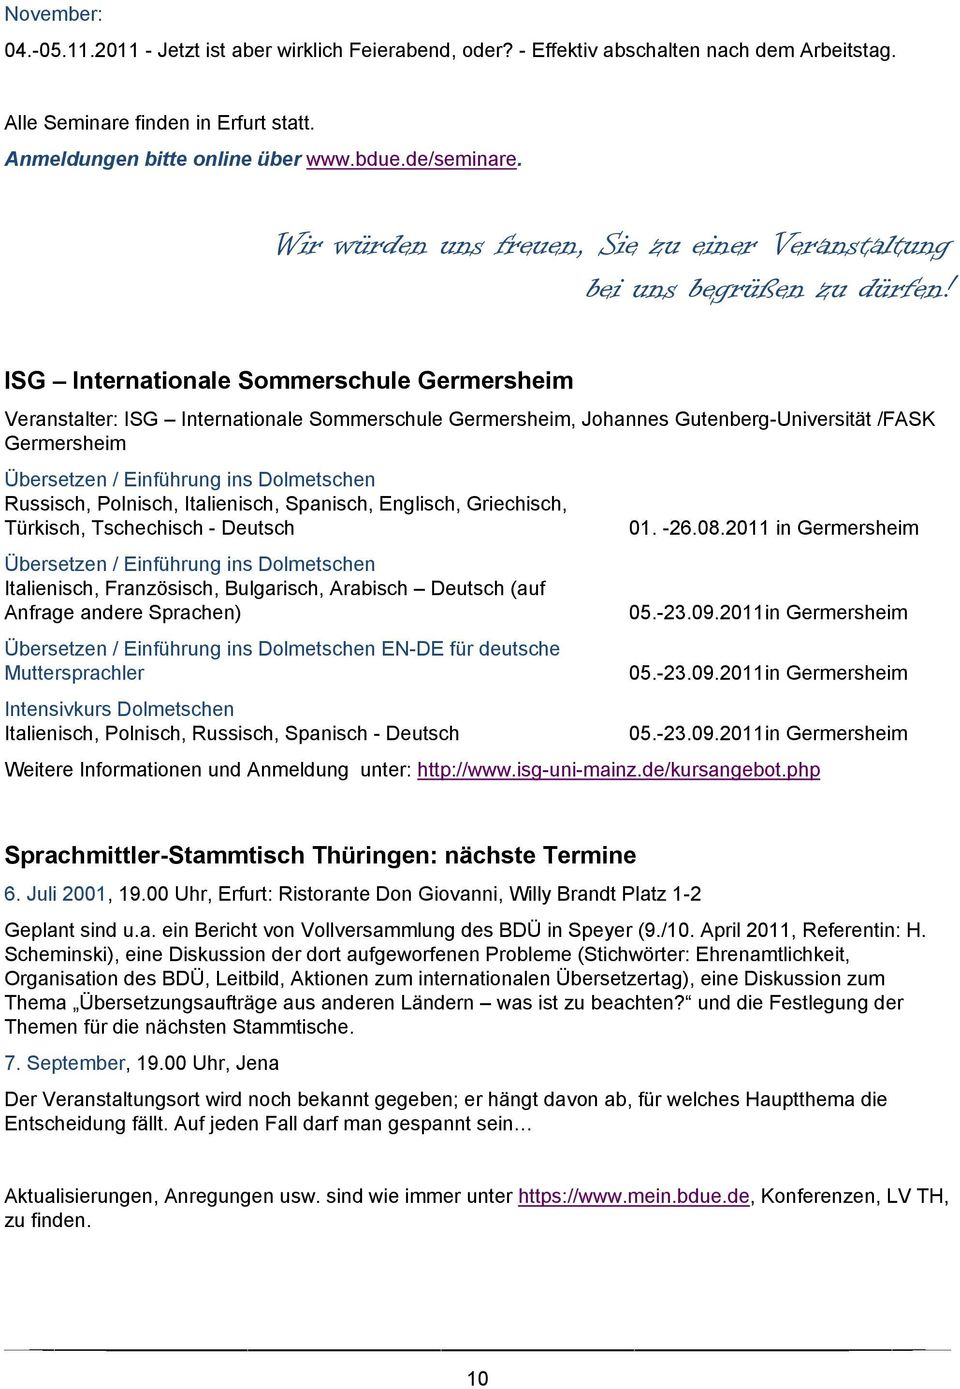 ISG Internationale Sommerschule Germersheim Veranstalter: ISG Internationale Sommerschule Germersheim, Johannes Gutenberg-Universität /FASK Germersheim Übersetzen / Einführung ins Dolmetschen